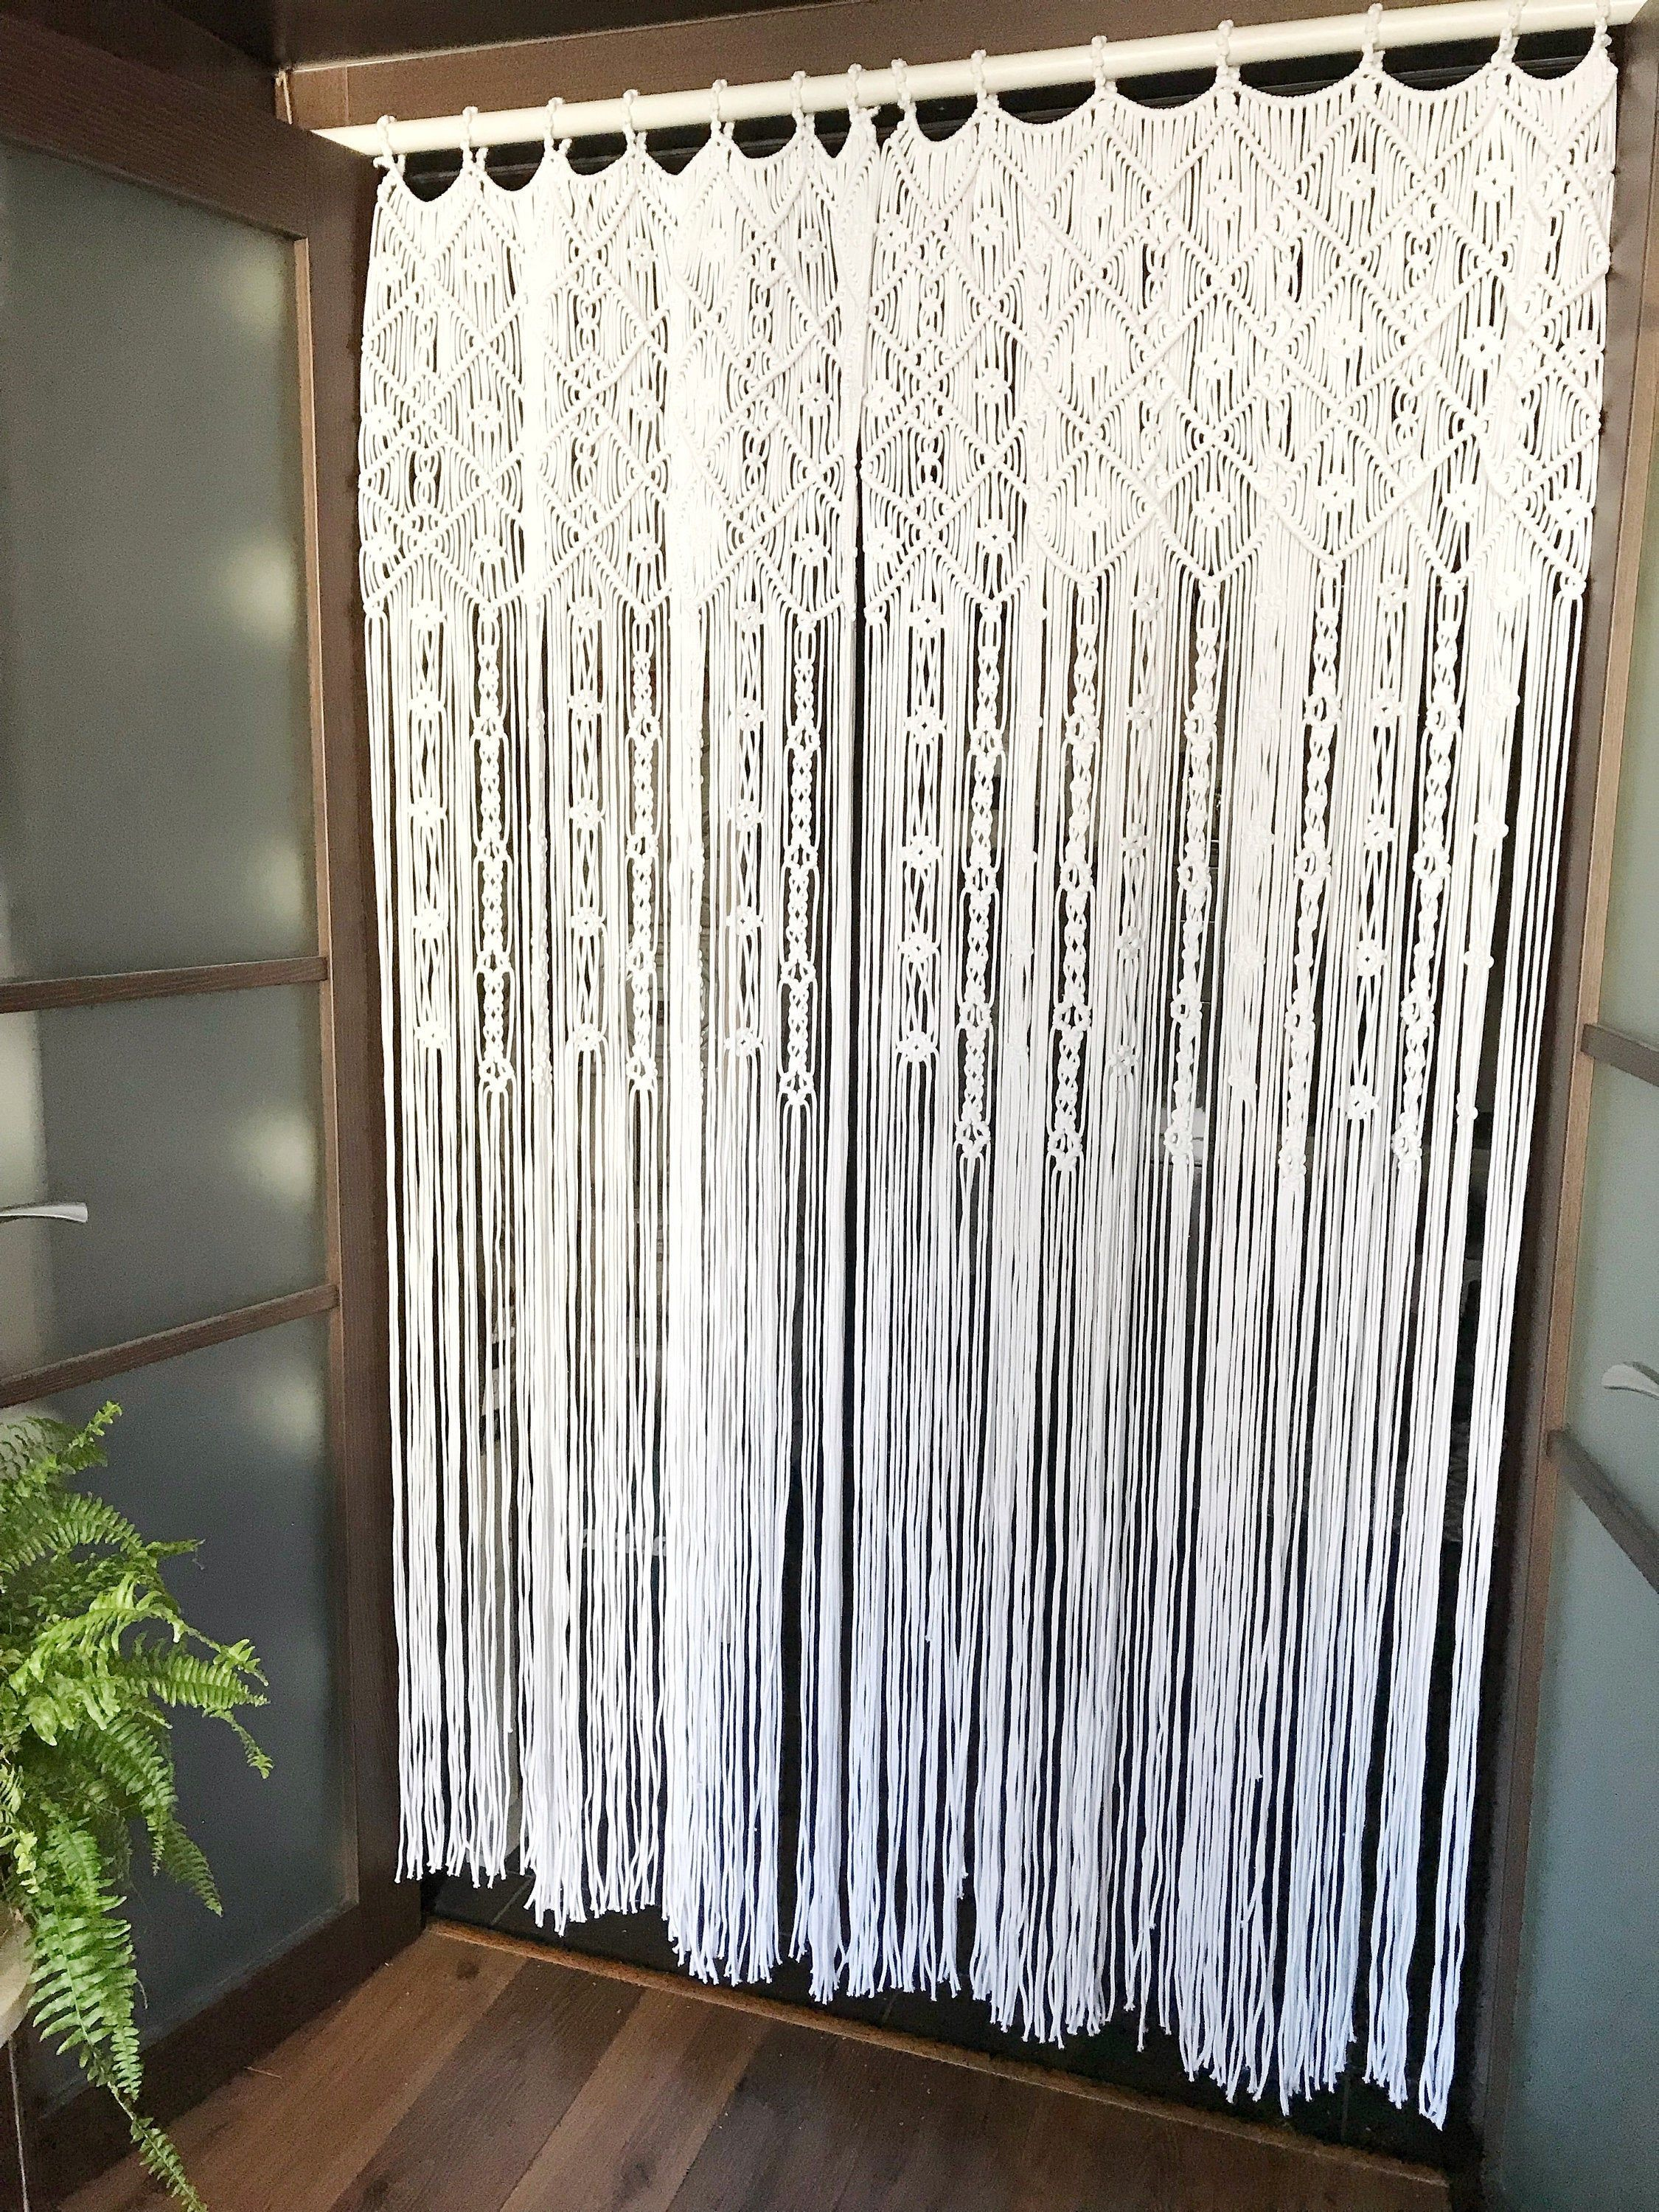 Macrame Curtain One Or Two Panels Curtain Macrame Room Etsy Macrame Door Curtain Macrame Curtain Panel Curtains